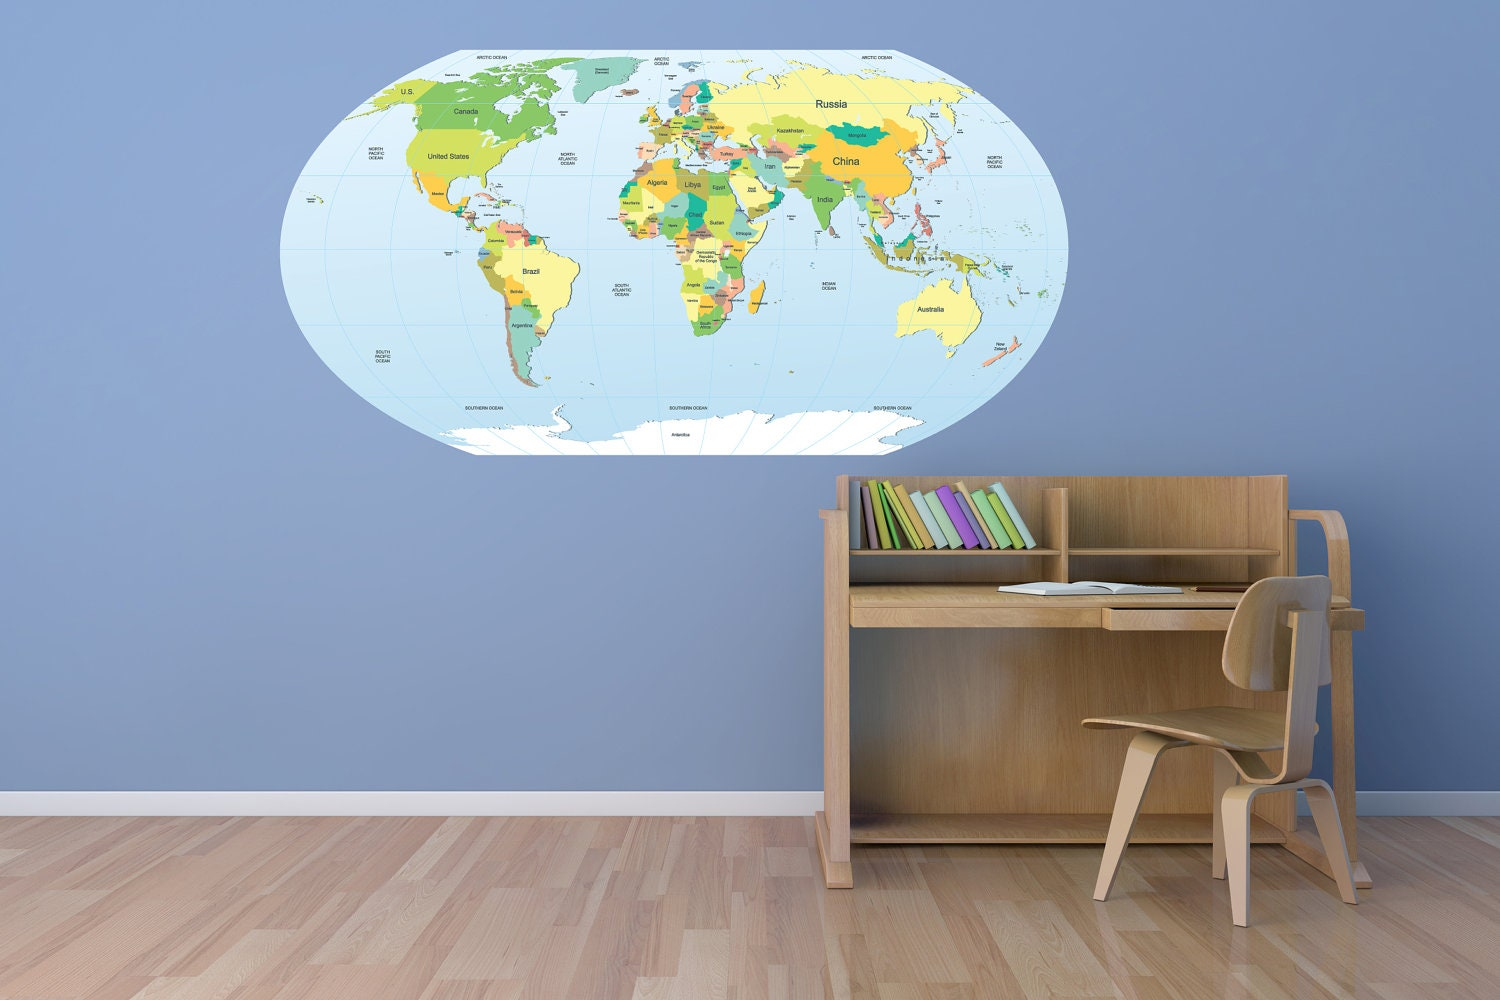 Brewster Wall Pops Peel /& Stick World  Dry-Erase Map with Marker